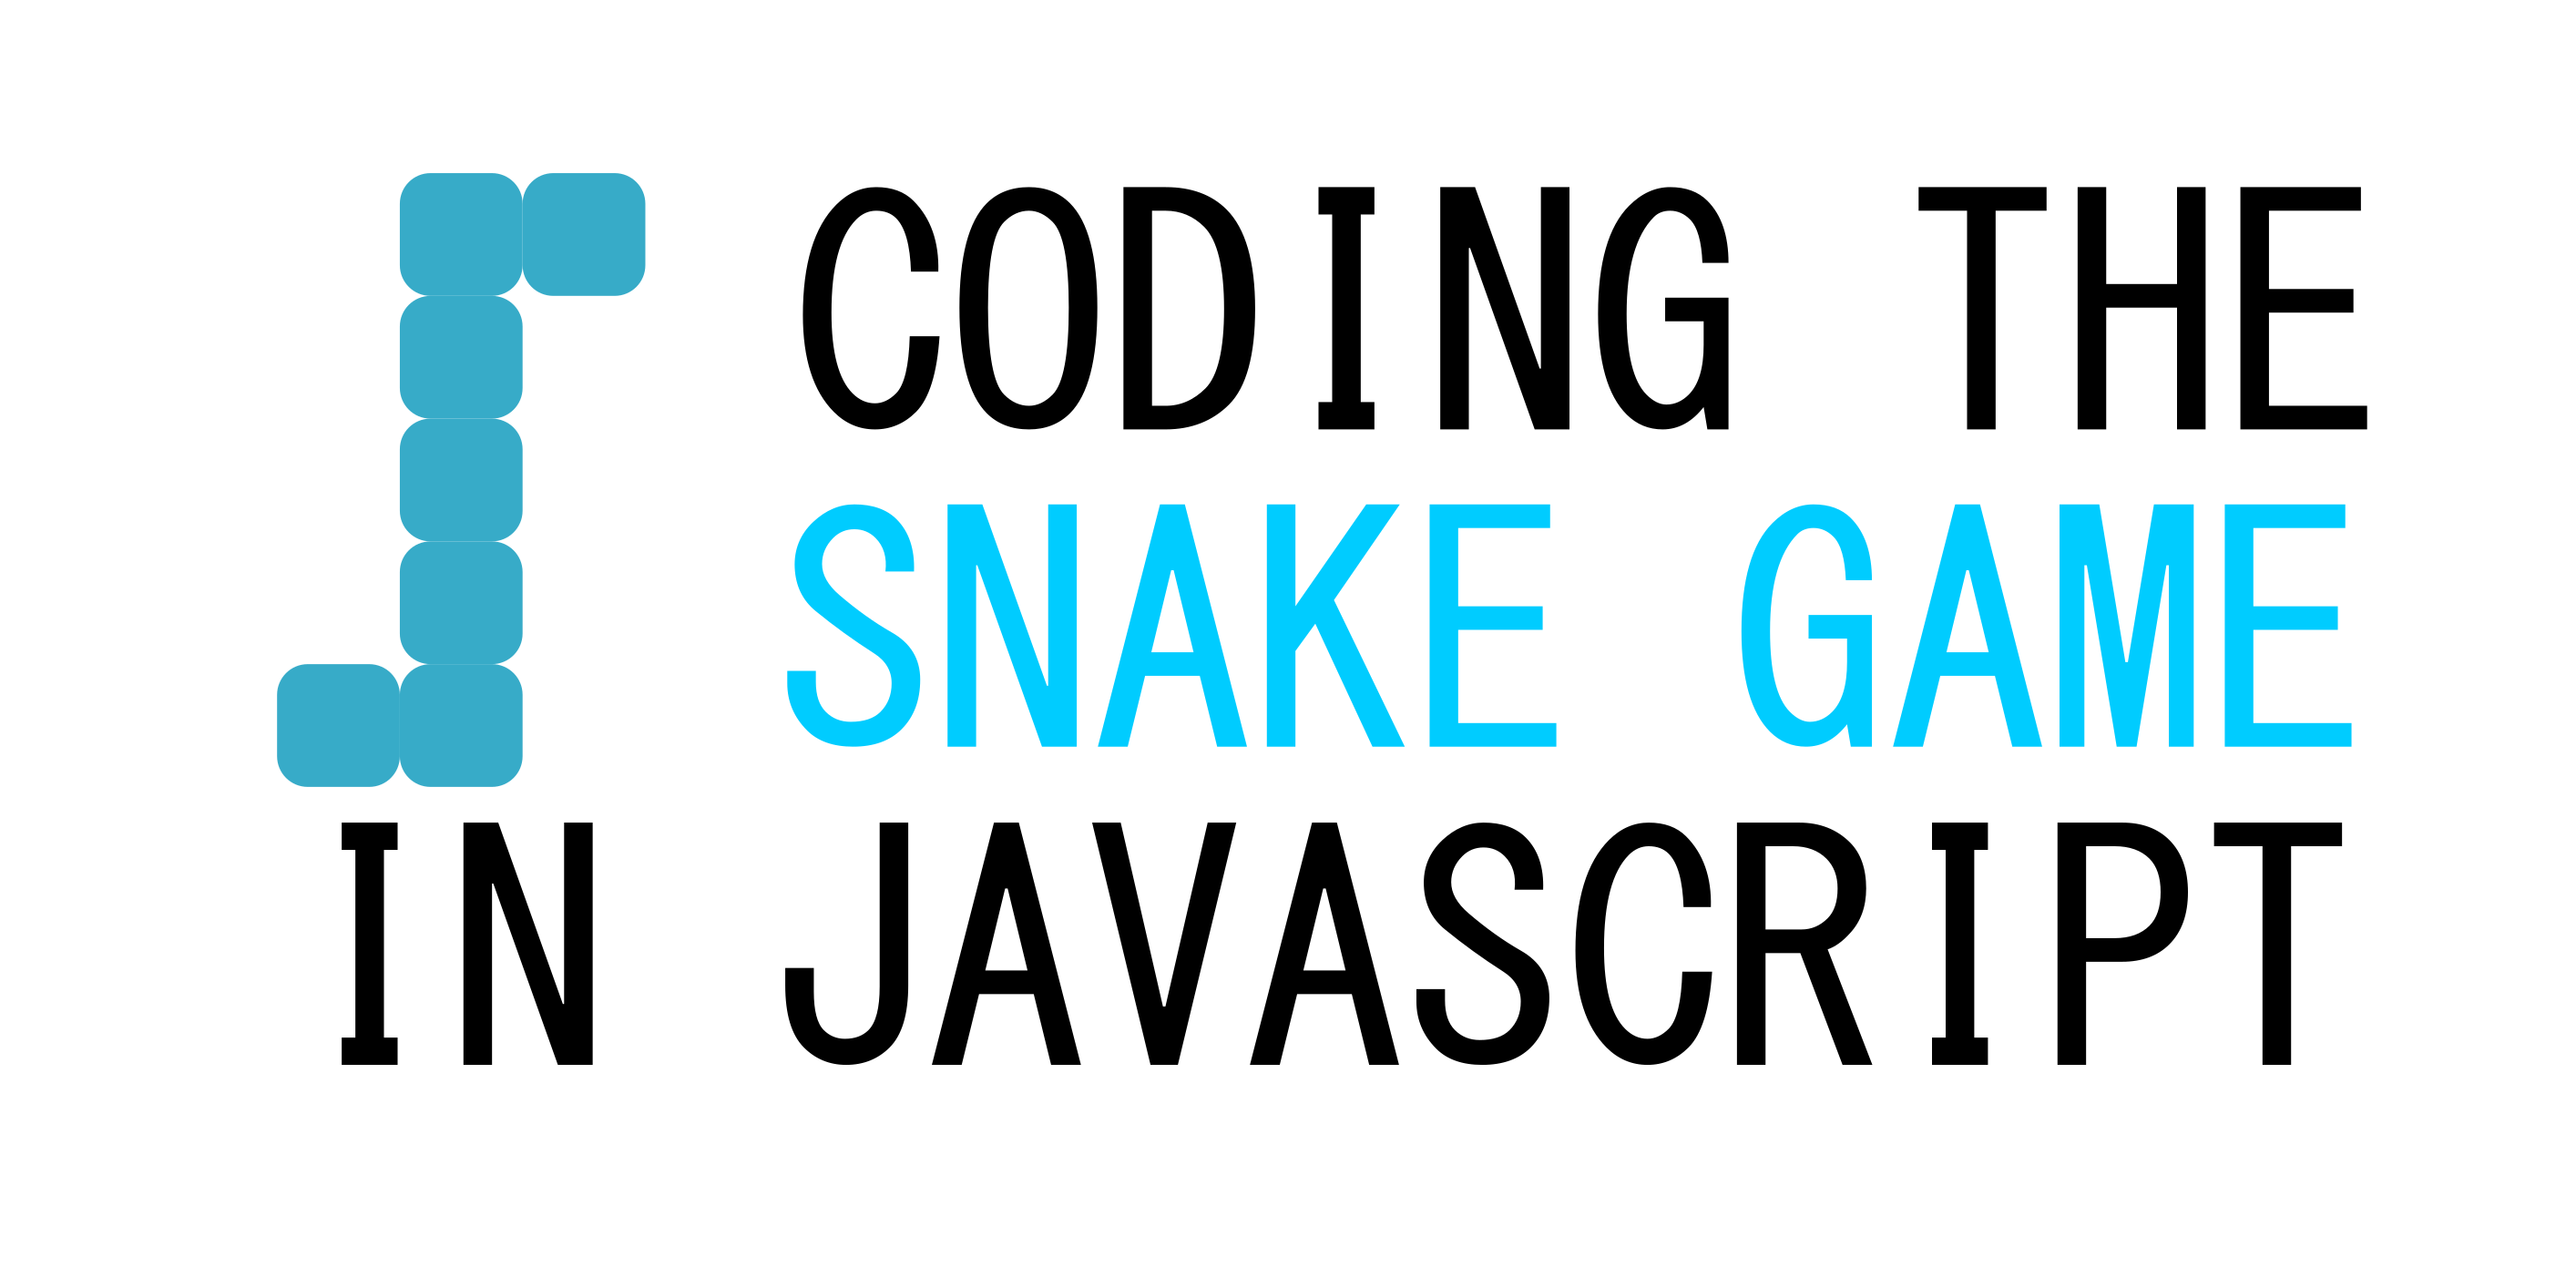 Coding The Snake Game In JavaScript